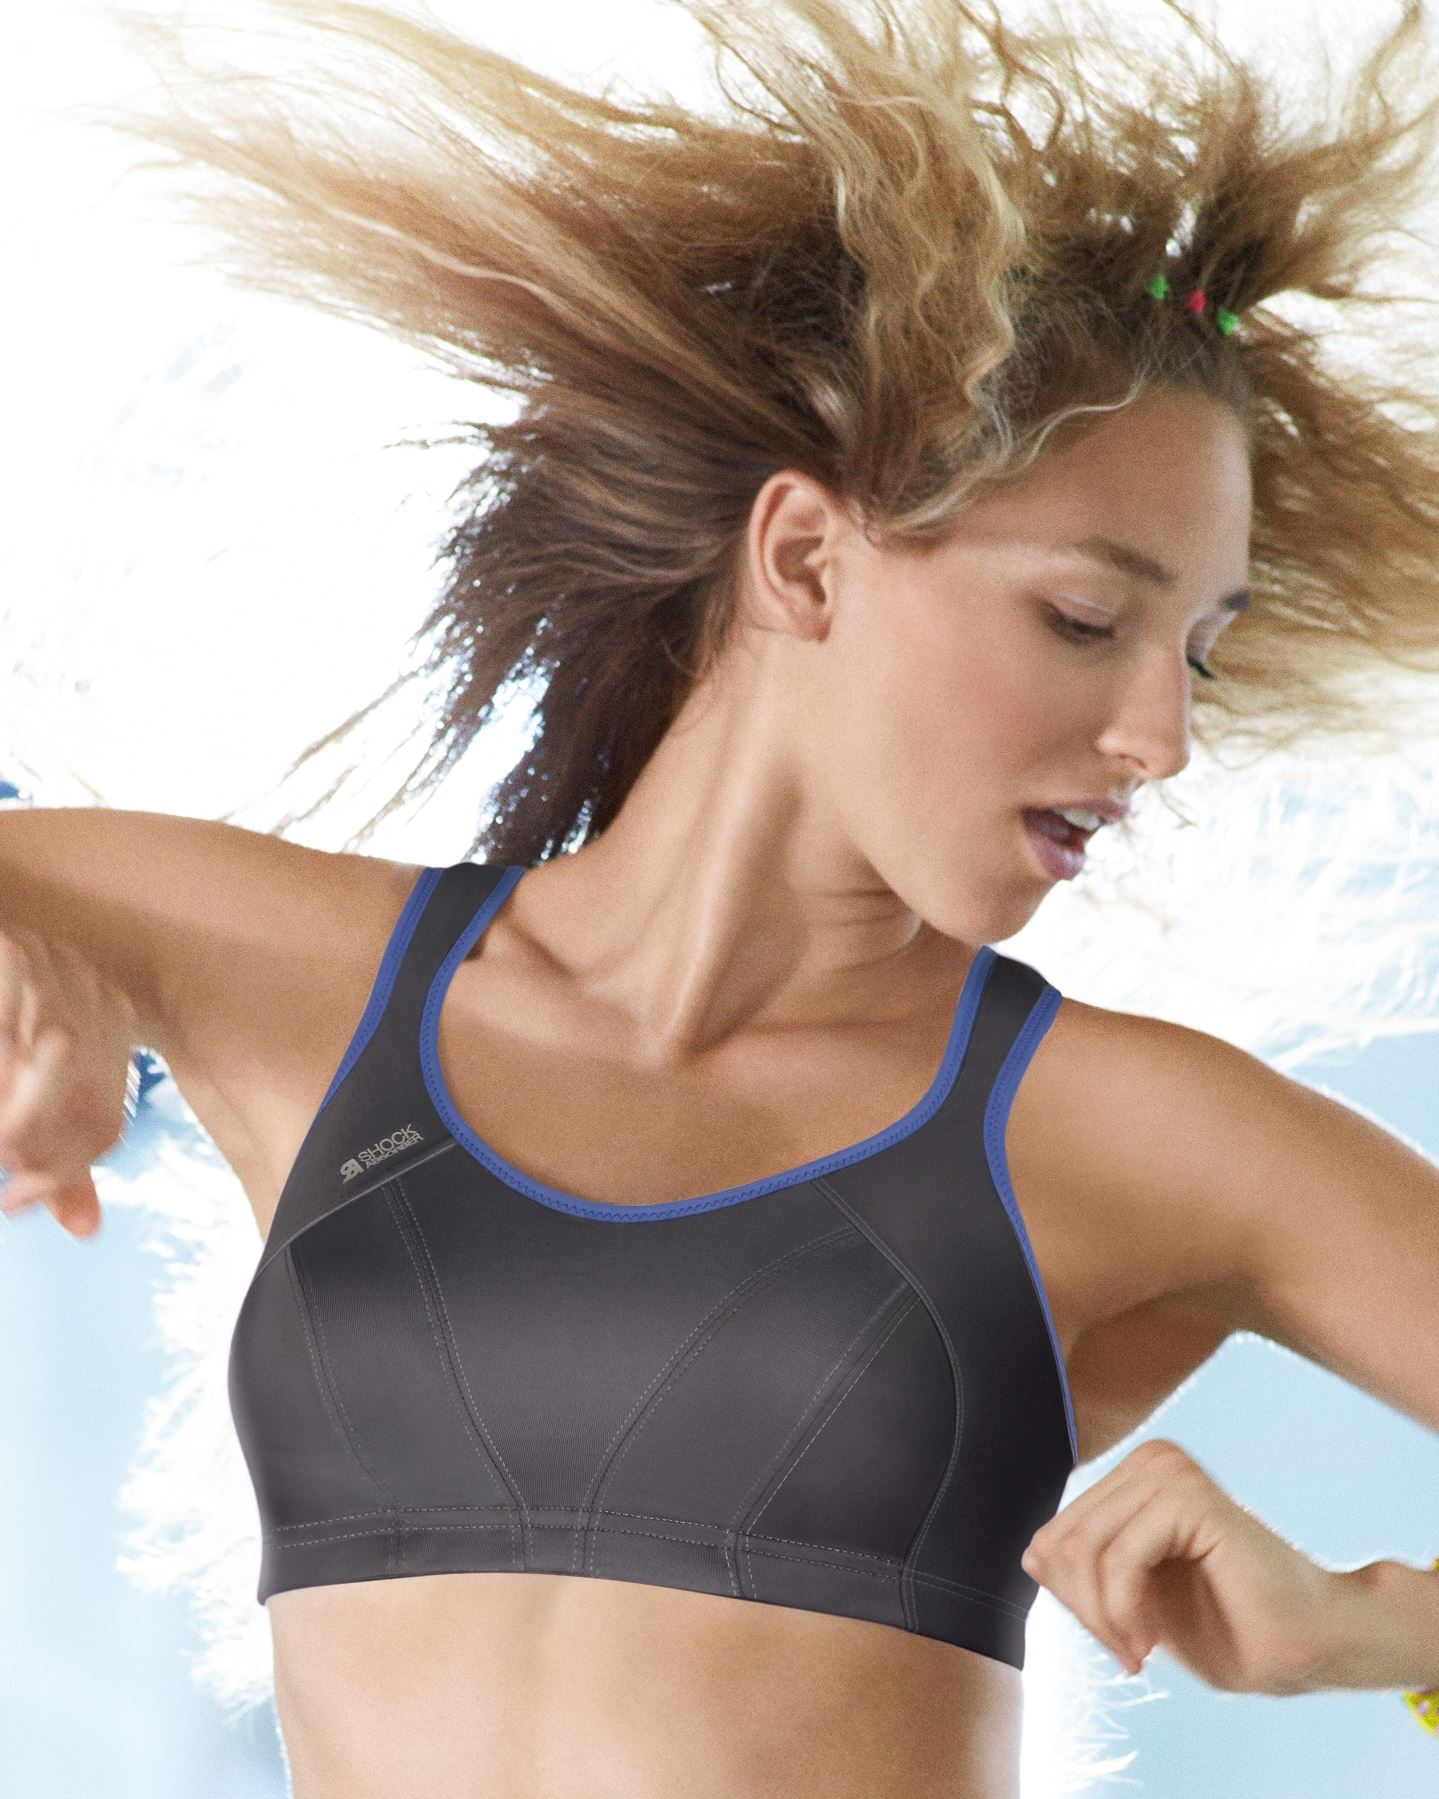 Shock Absorber Sports Bra S4490 Sizes 30-40 B-HH Blue Grey Firm Support.